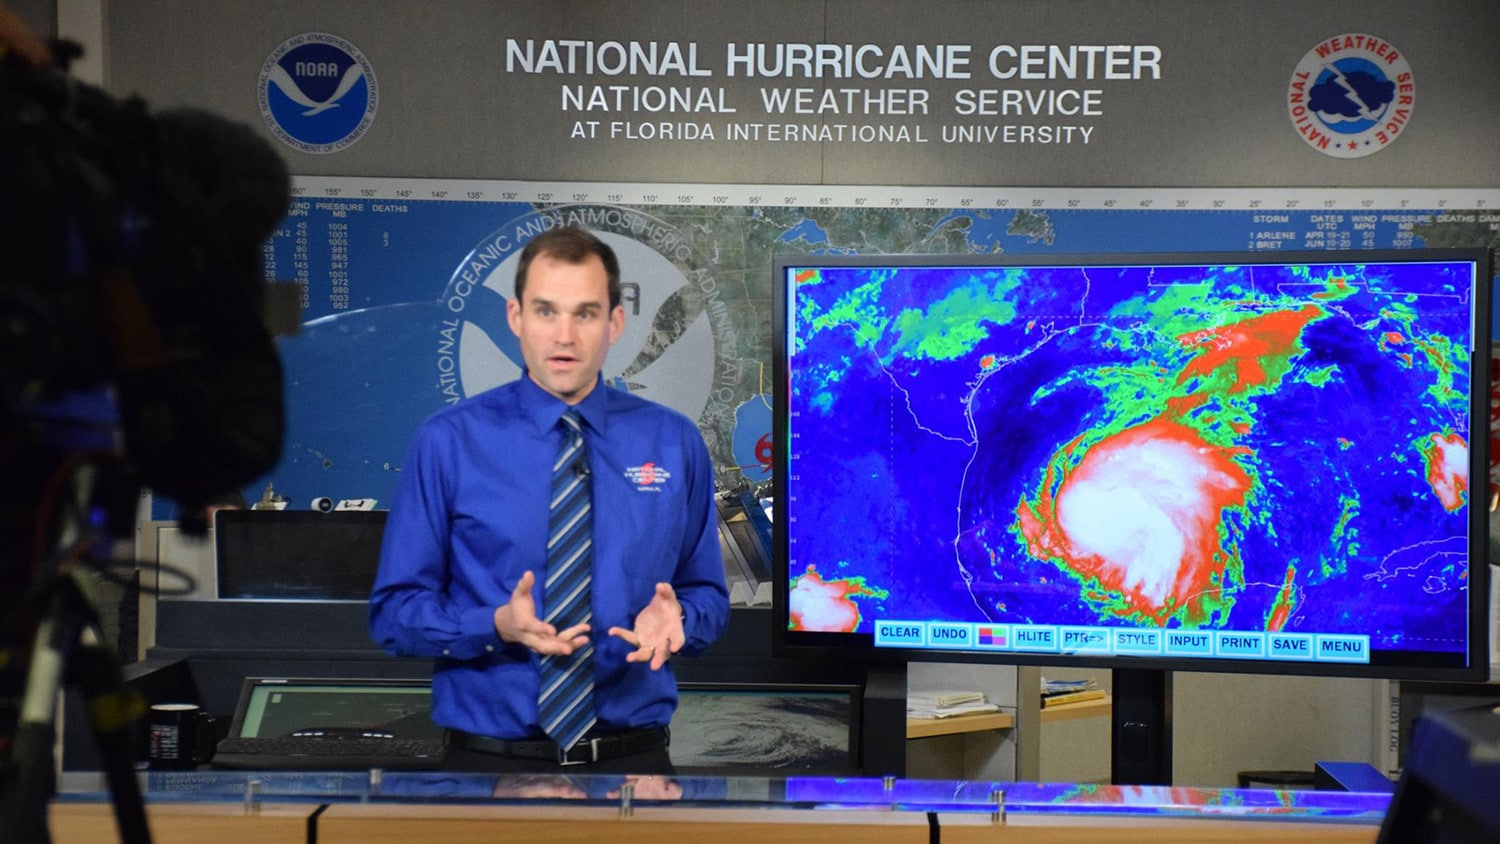 Michael Brennan stands next to a satellite image of a hurricane on a screen in the National Hurricane Center